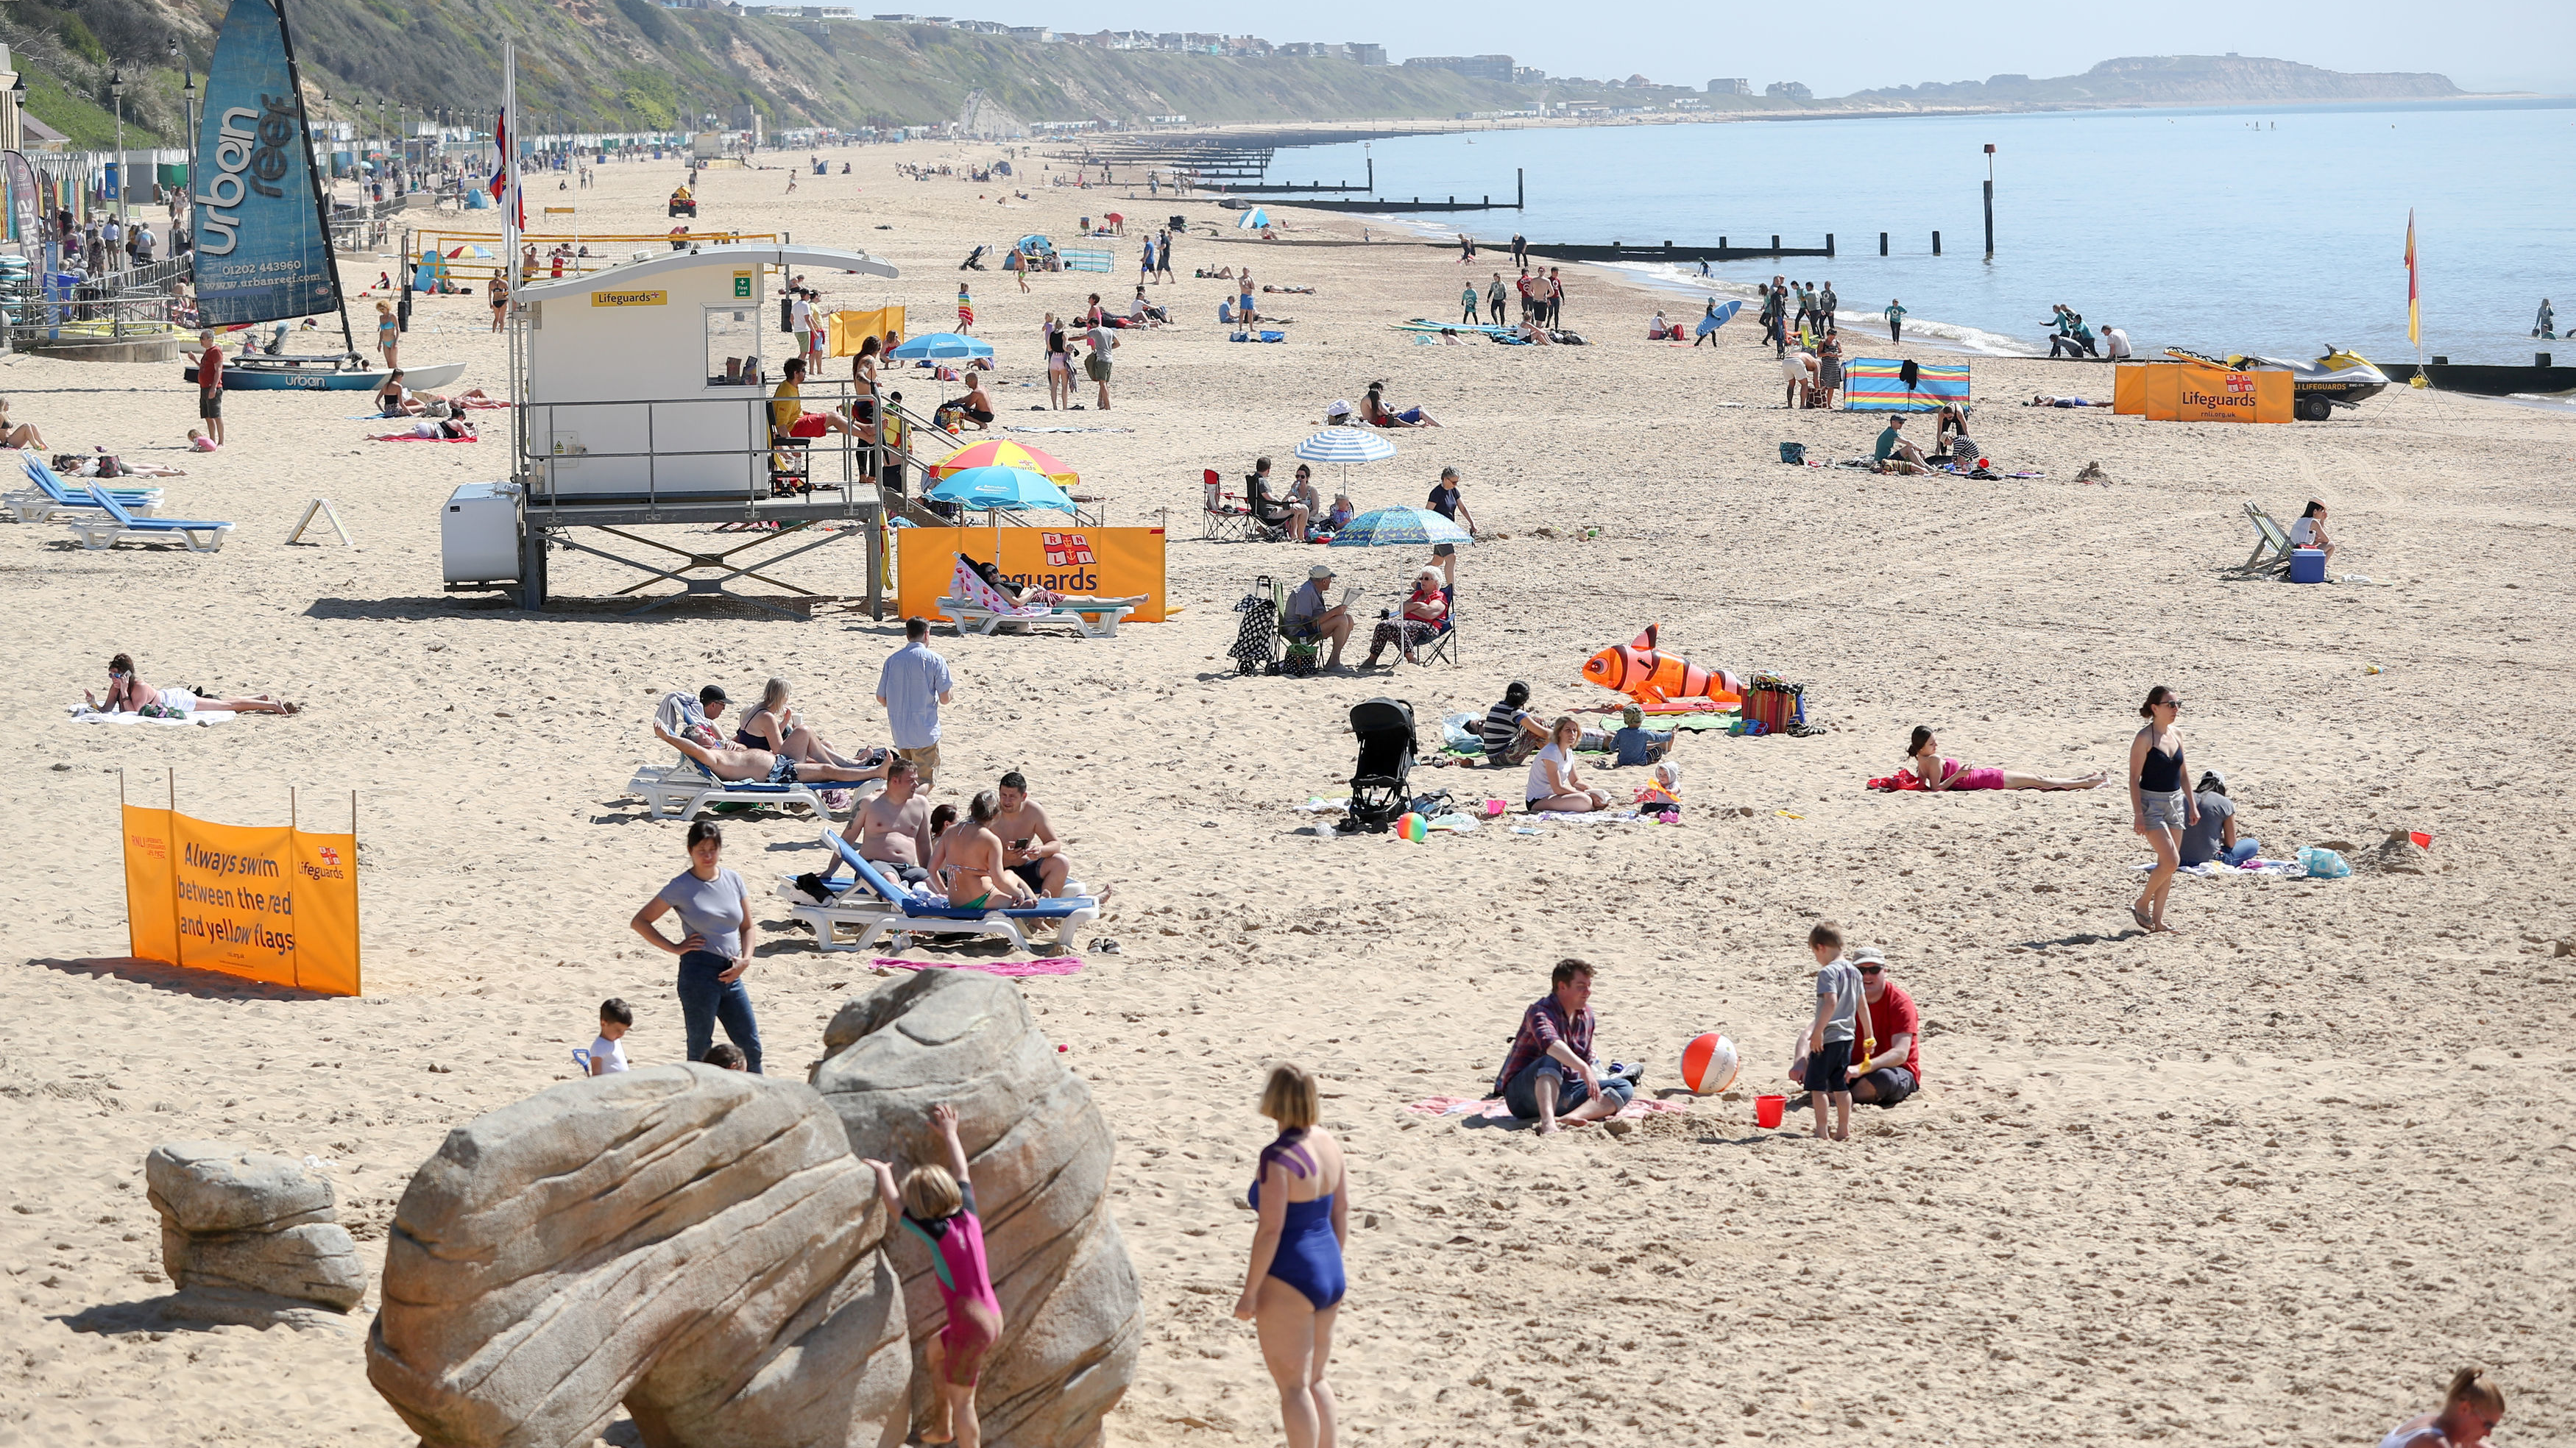 UK Is Set For Two-Week Heatwave Which Could Make It Hottest June In Over 40 Years